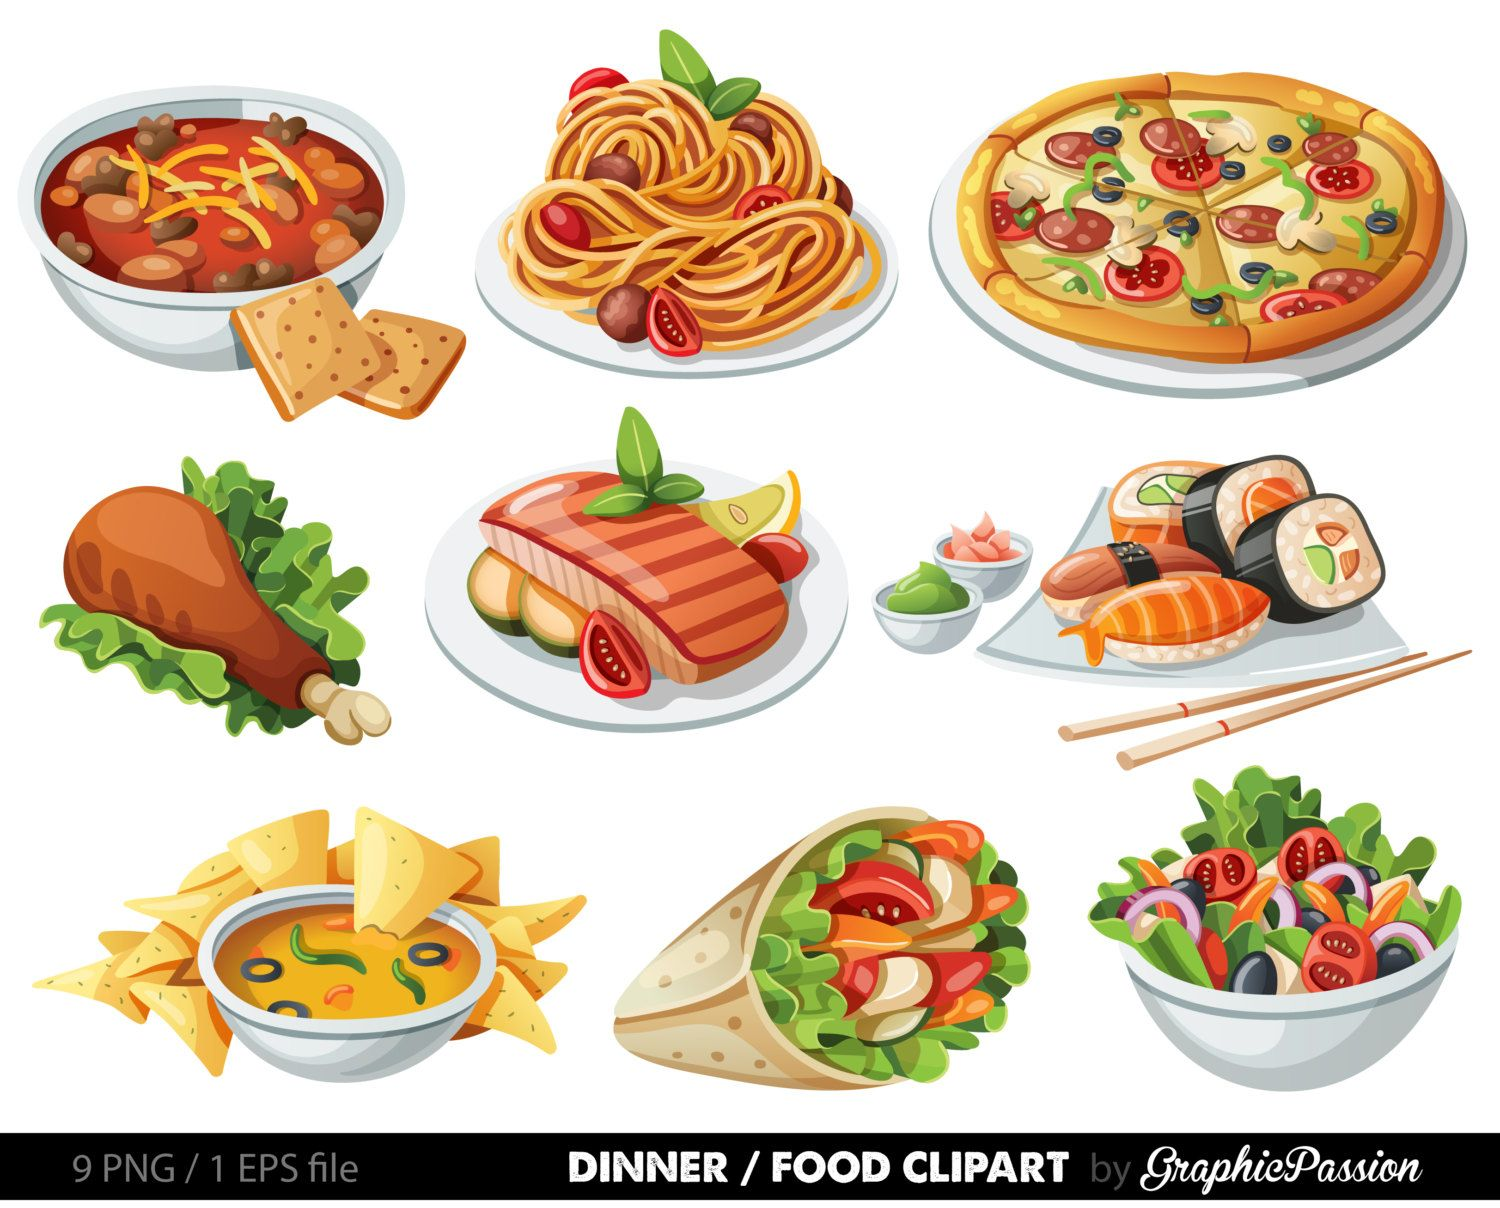 Food Clipart Images Look At Clip Art Images Clipartlook In 2020 Food Clipart Food Clips Food